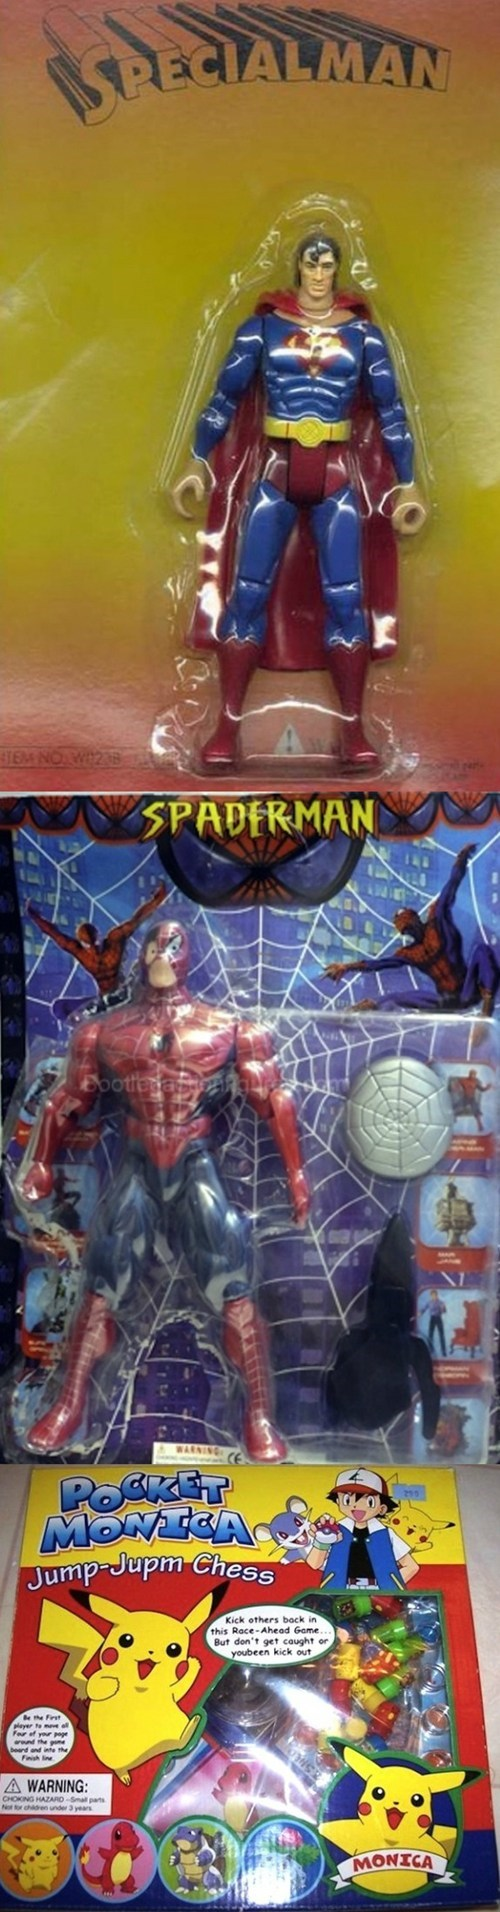 Amazing Knockoff Action Figures of the Day